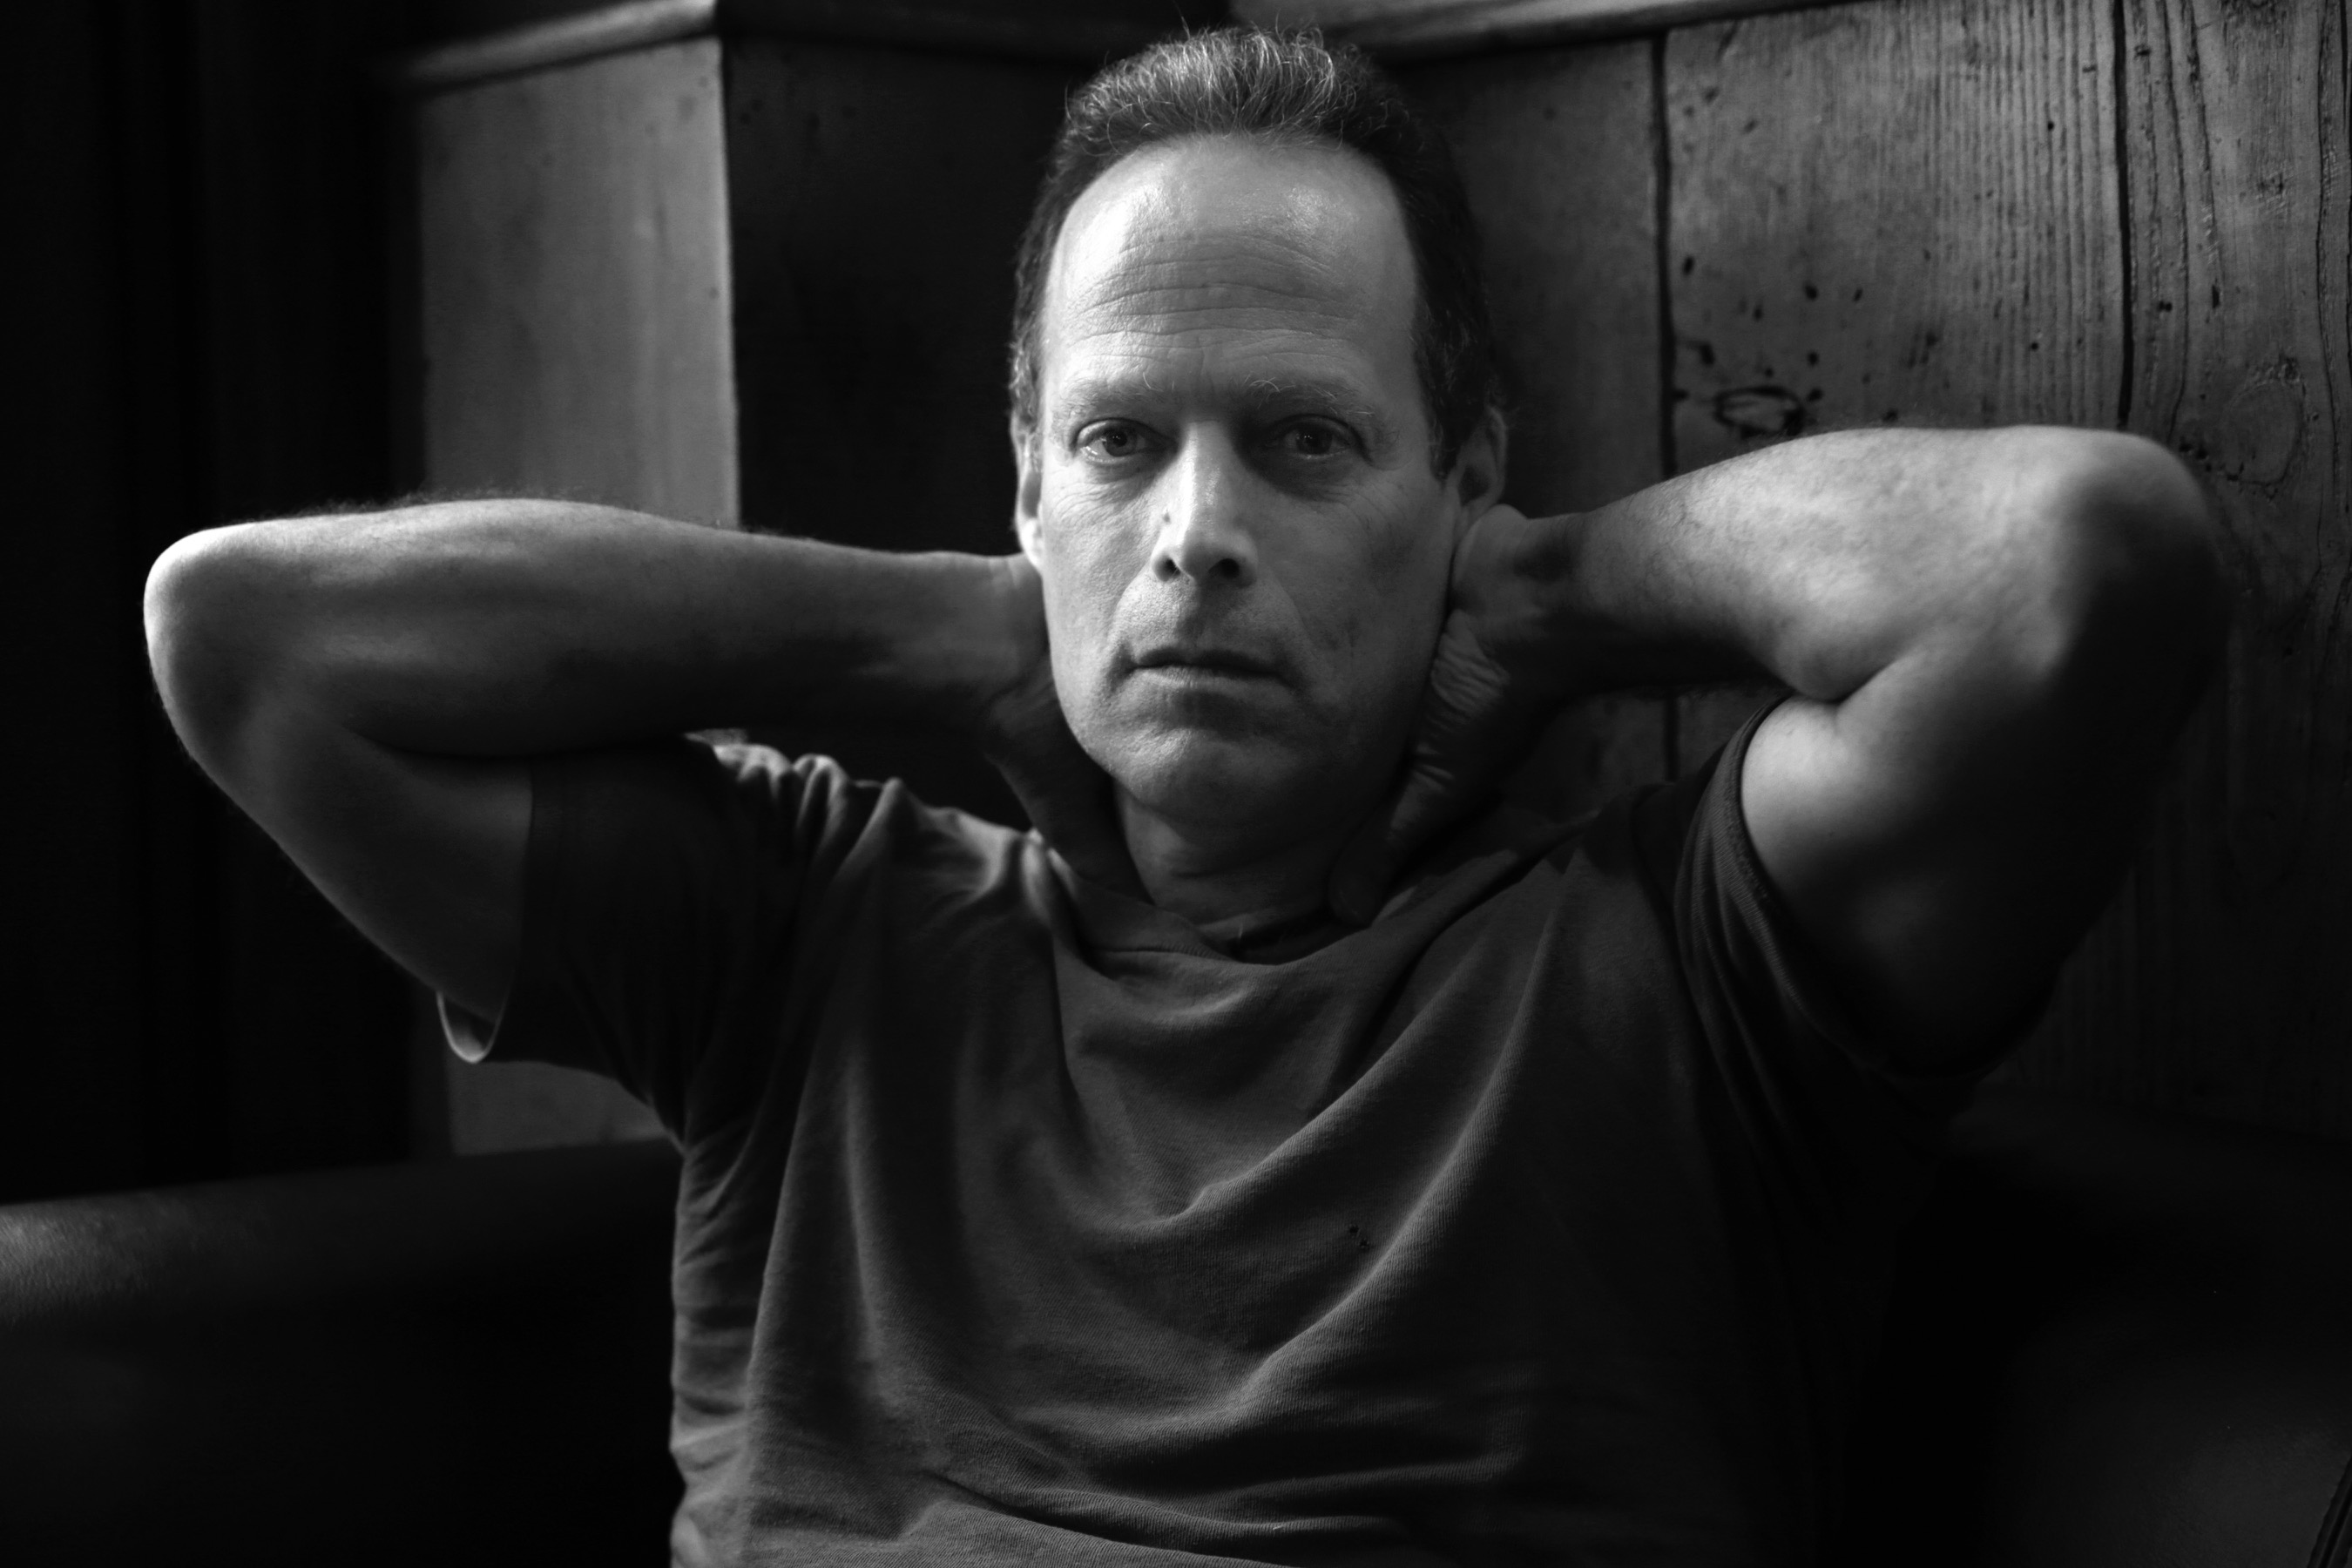 Author Sebastian Junger talks about his new book 'Tribe' during an interview at The Half King bar and restaurant on West 23rd street in New York, on Tuesday, April 26th 2016.